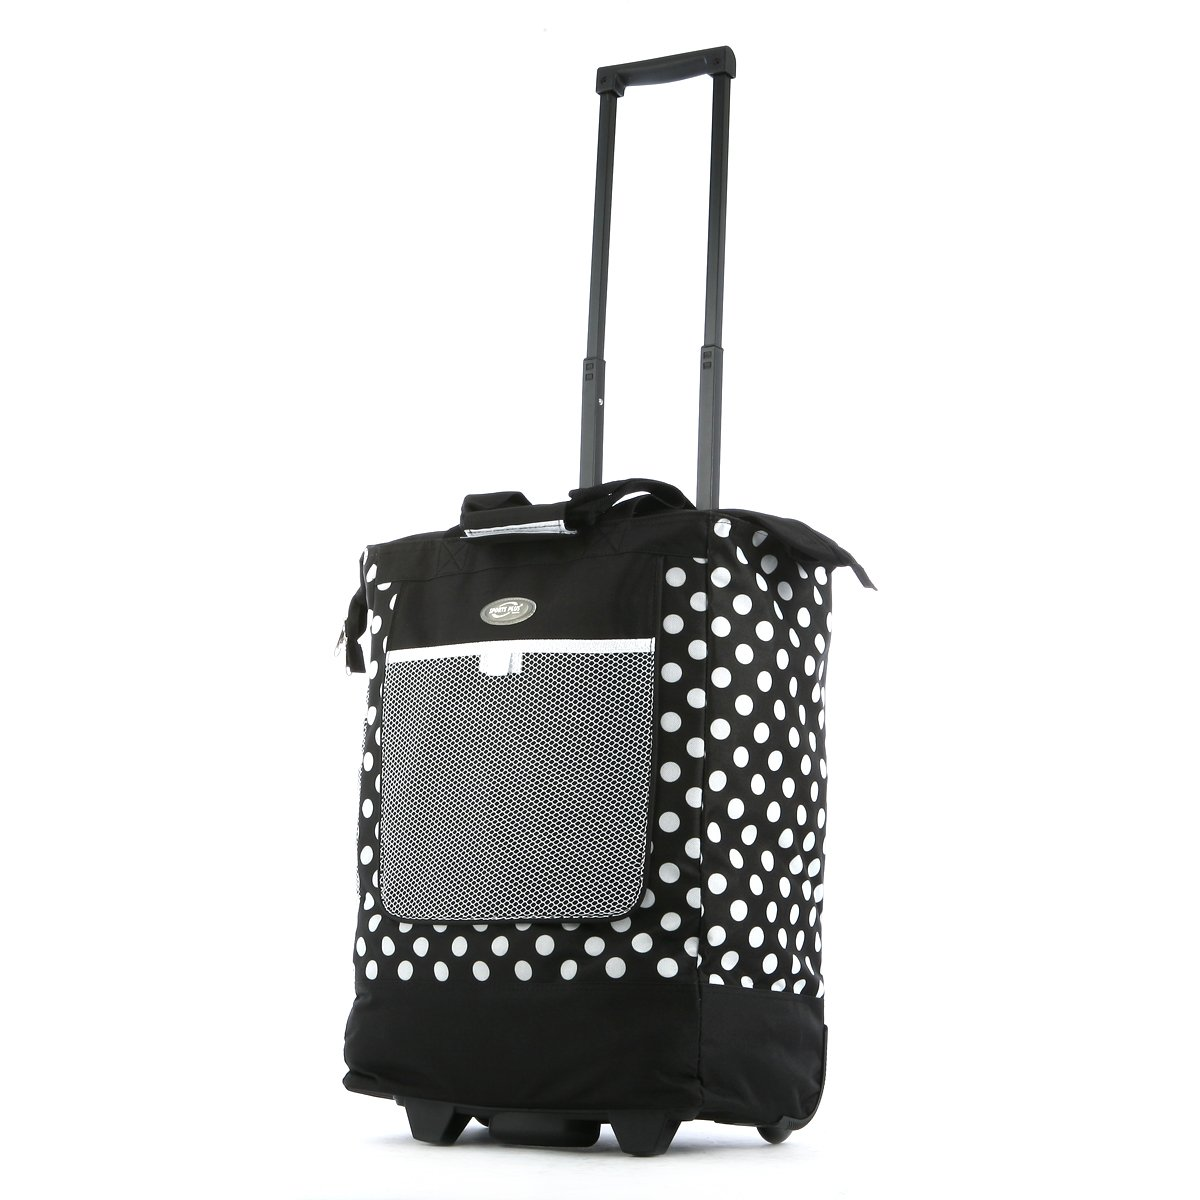 Olympia Luggage Rolling Printed Shopper Tote, Black, One Size by Olympia